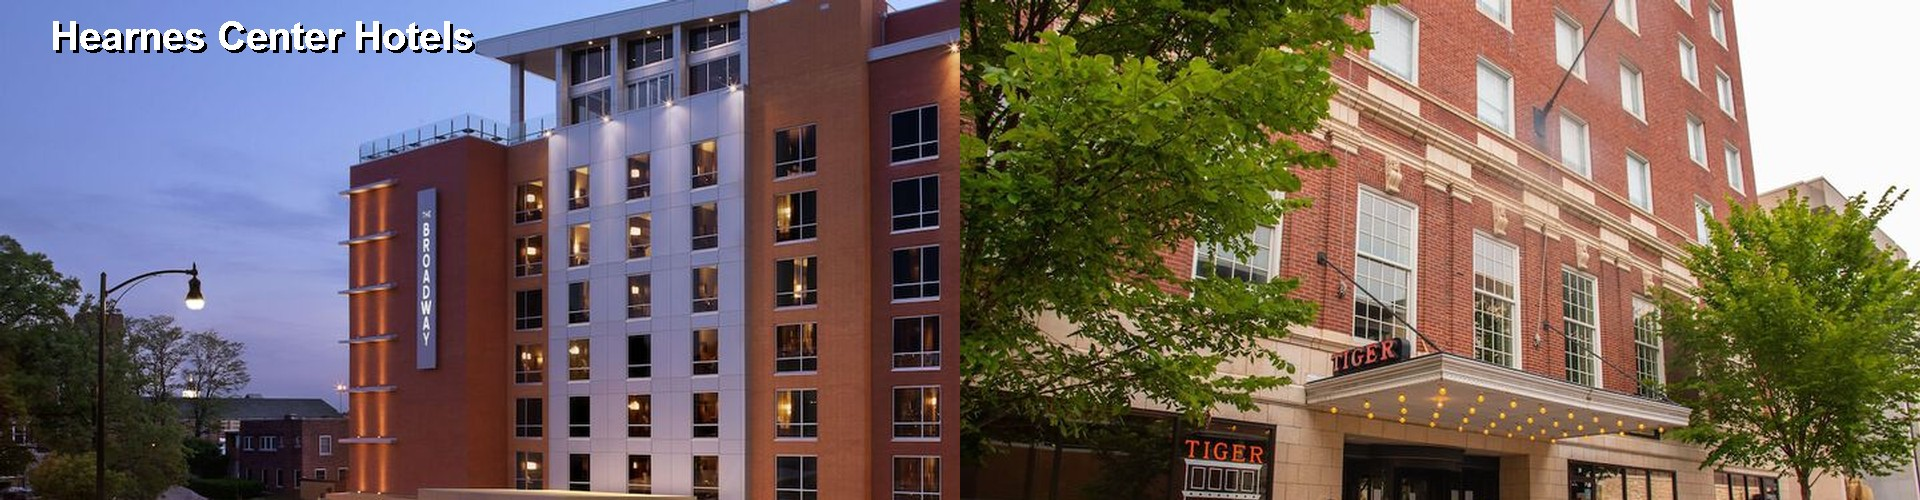 5 Best Hotels near Hearnes Center